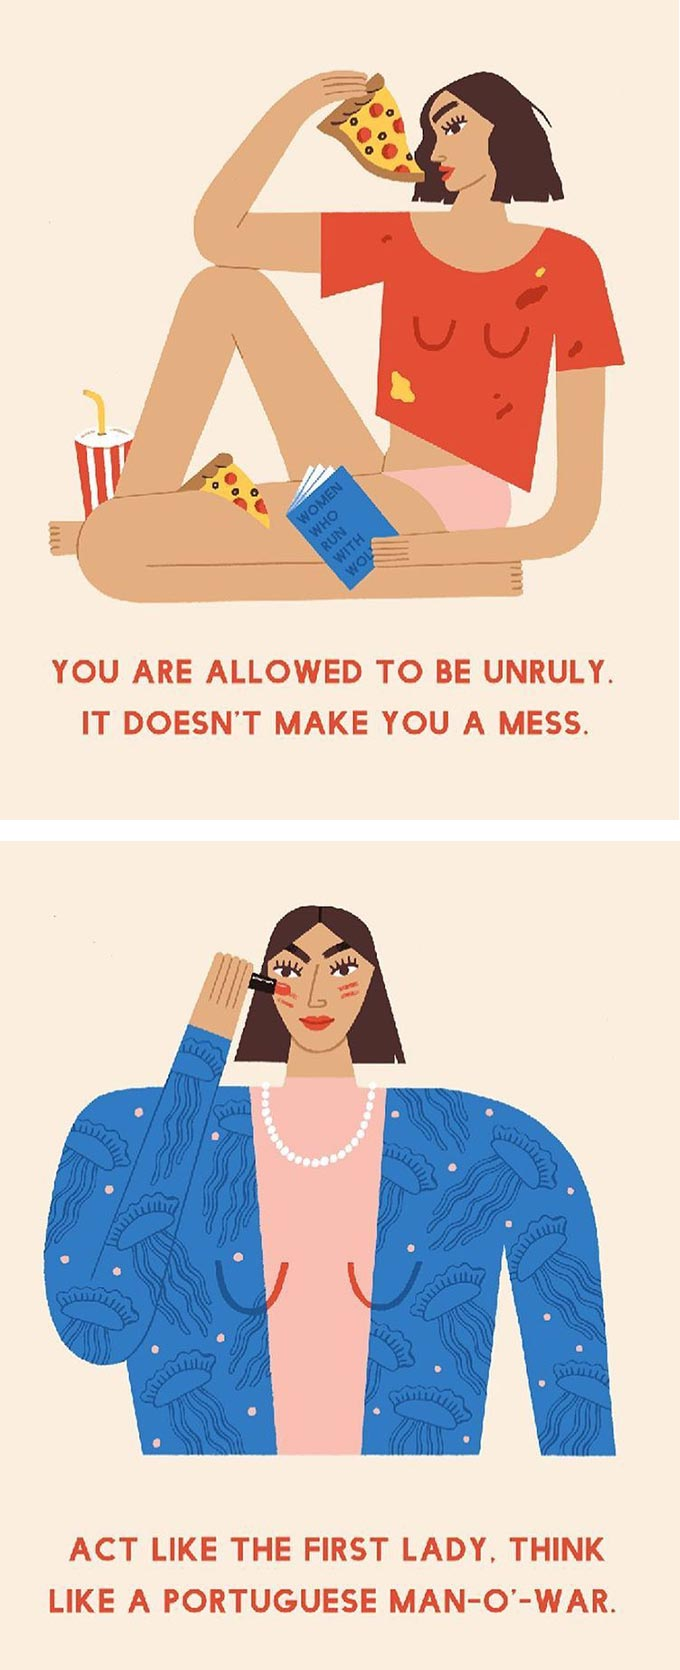 Illustration by Noa Snir, words of wisdom by Amy Rose Spiegel